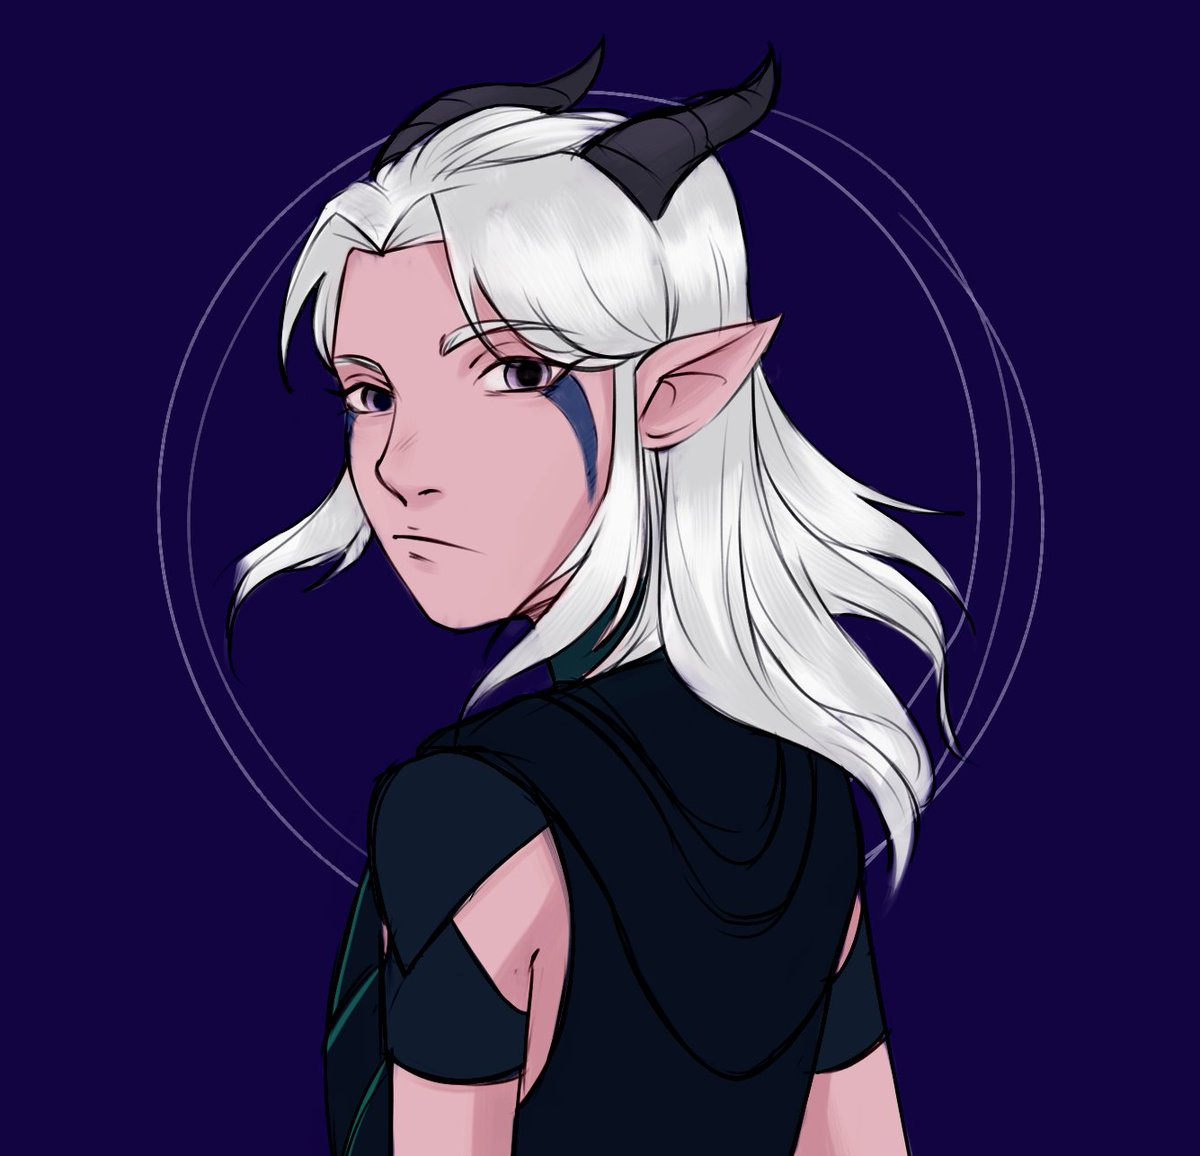 rayla and 20% opacity rayla #thedragonprince <br>http://pic.twitter.com/ZL4hOtuRVg